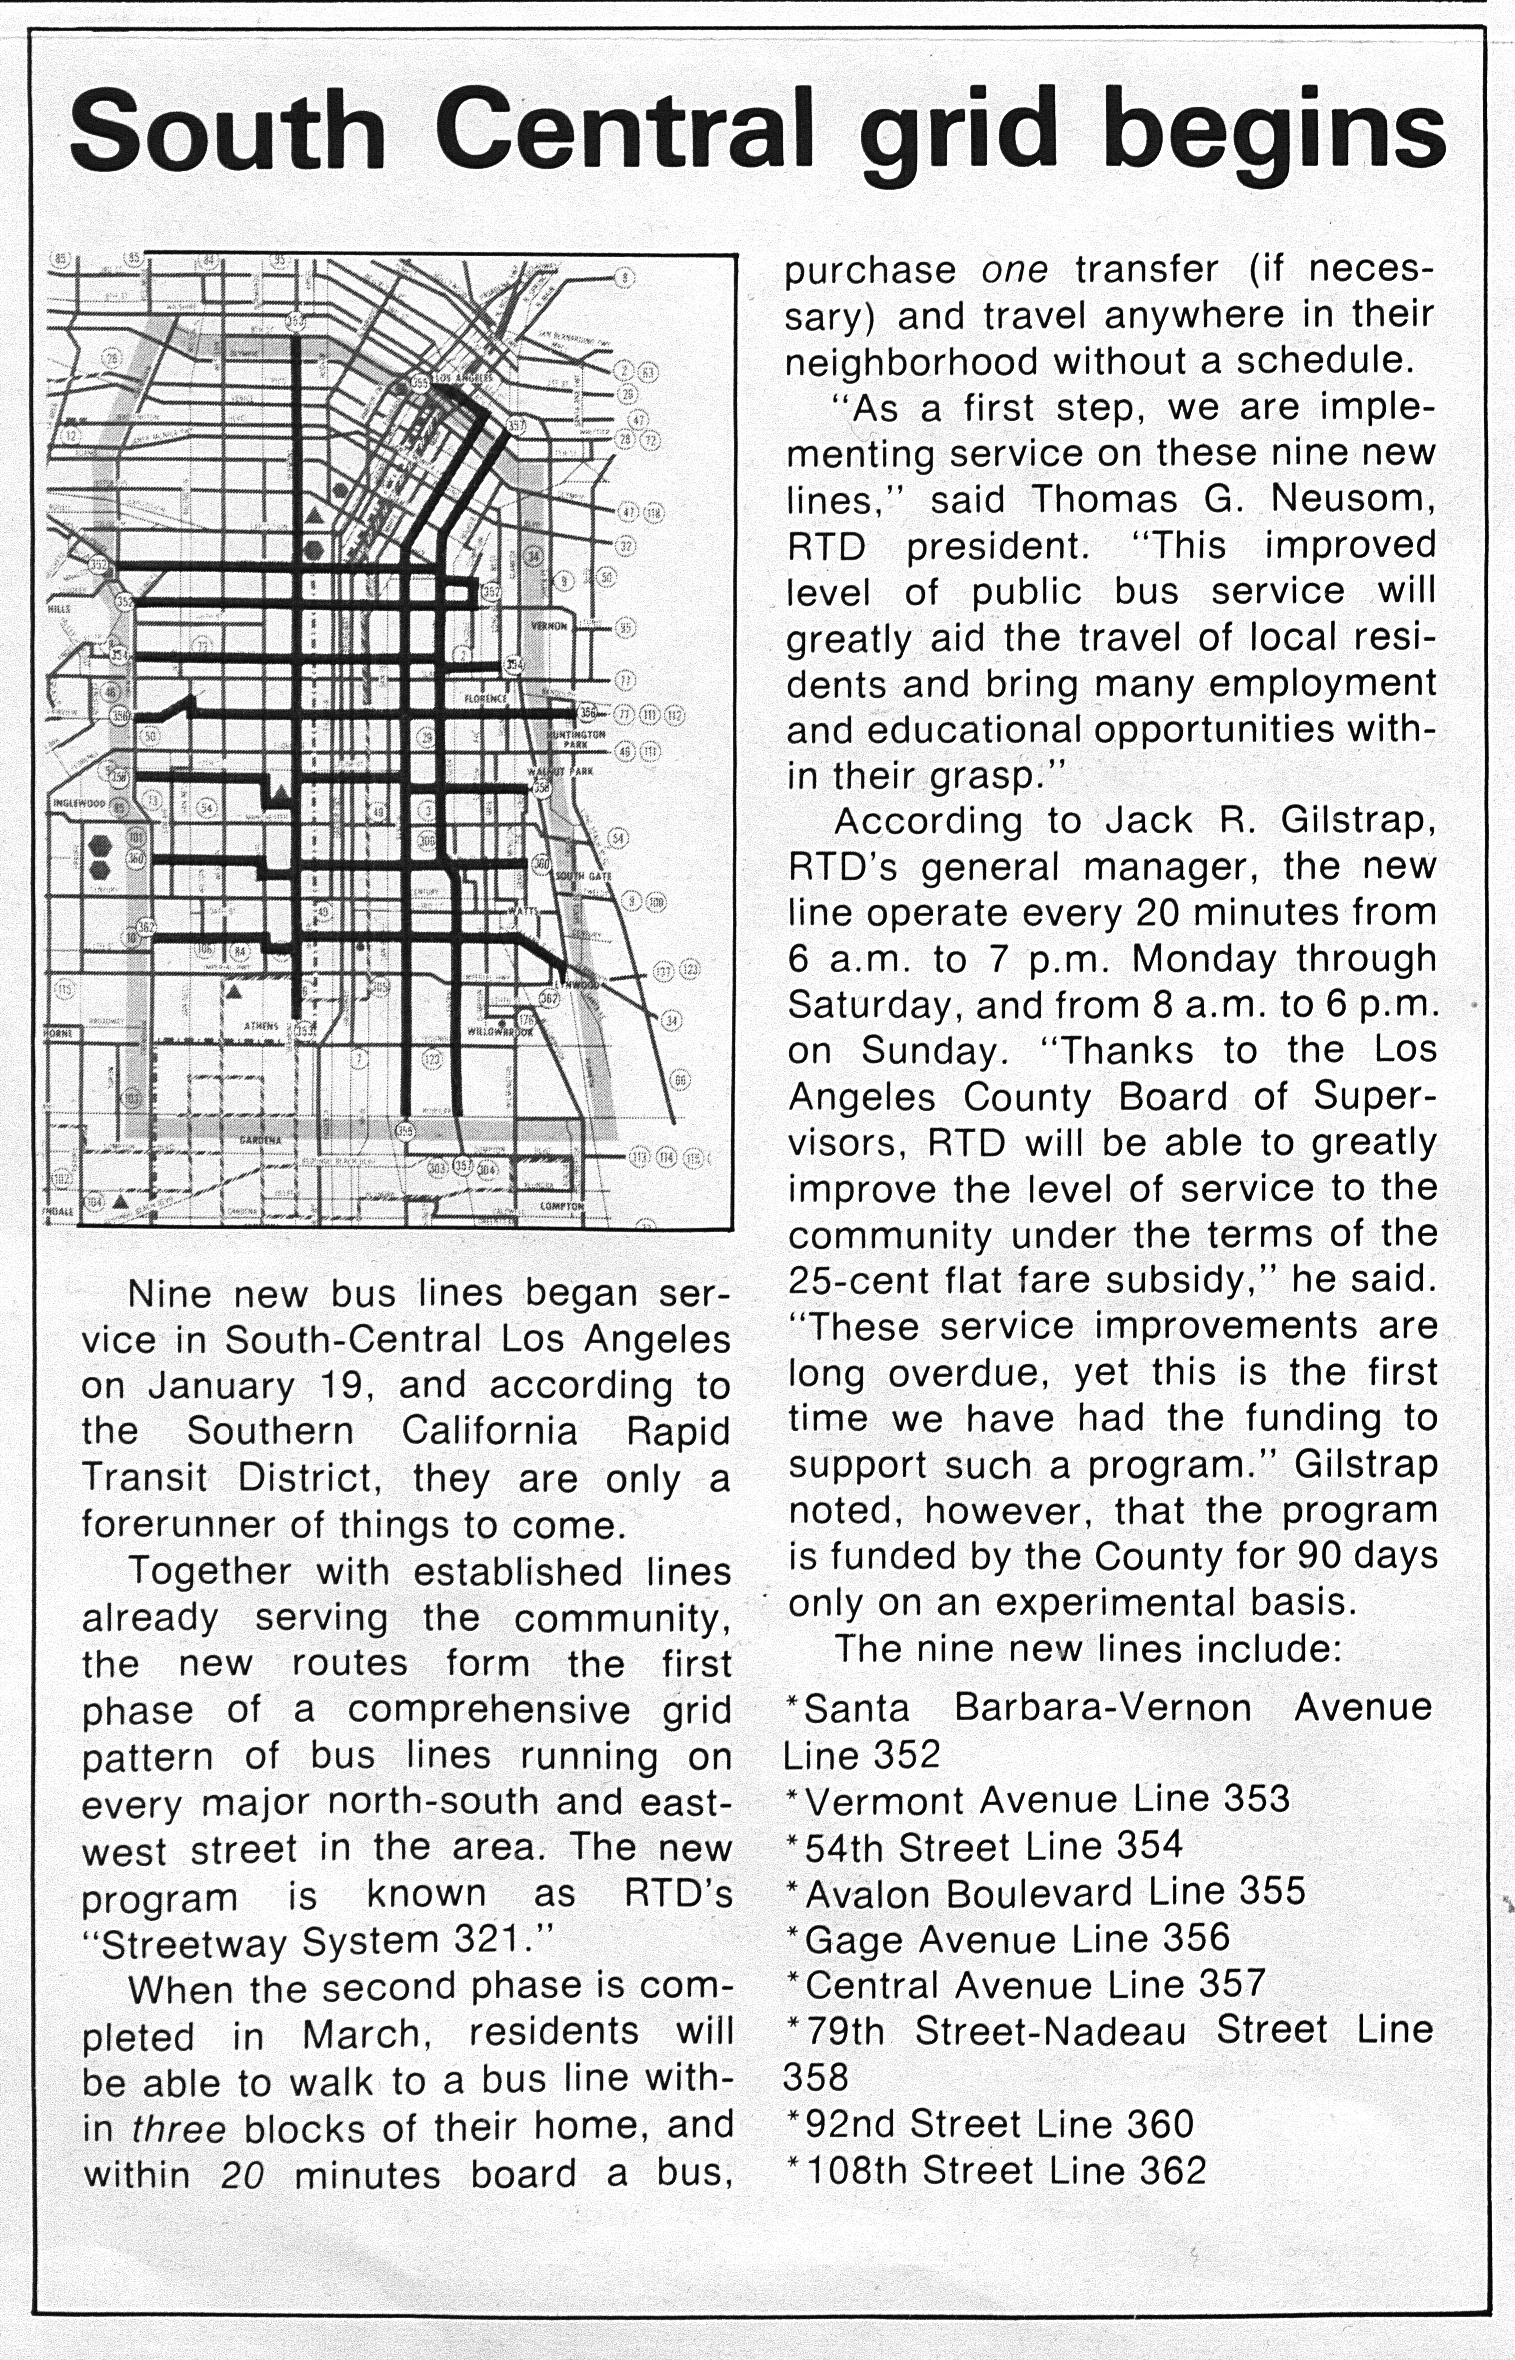 January 19: This Date in Los Angeles Transportation History